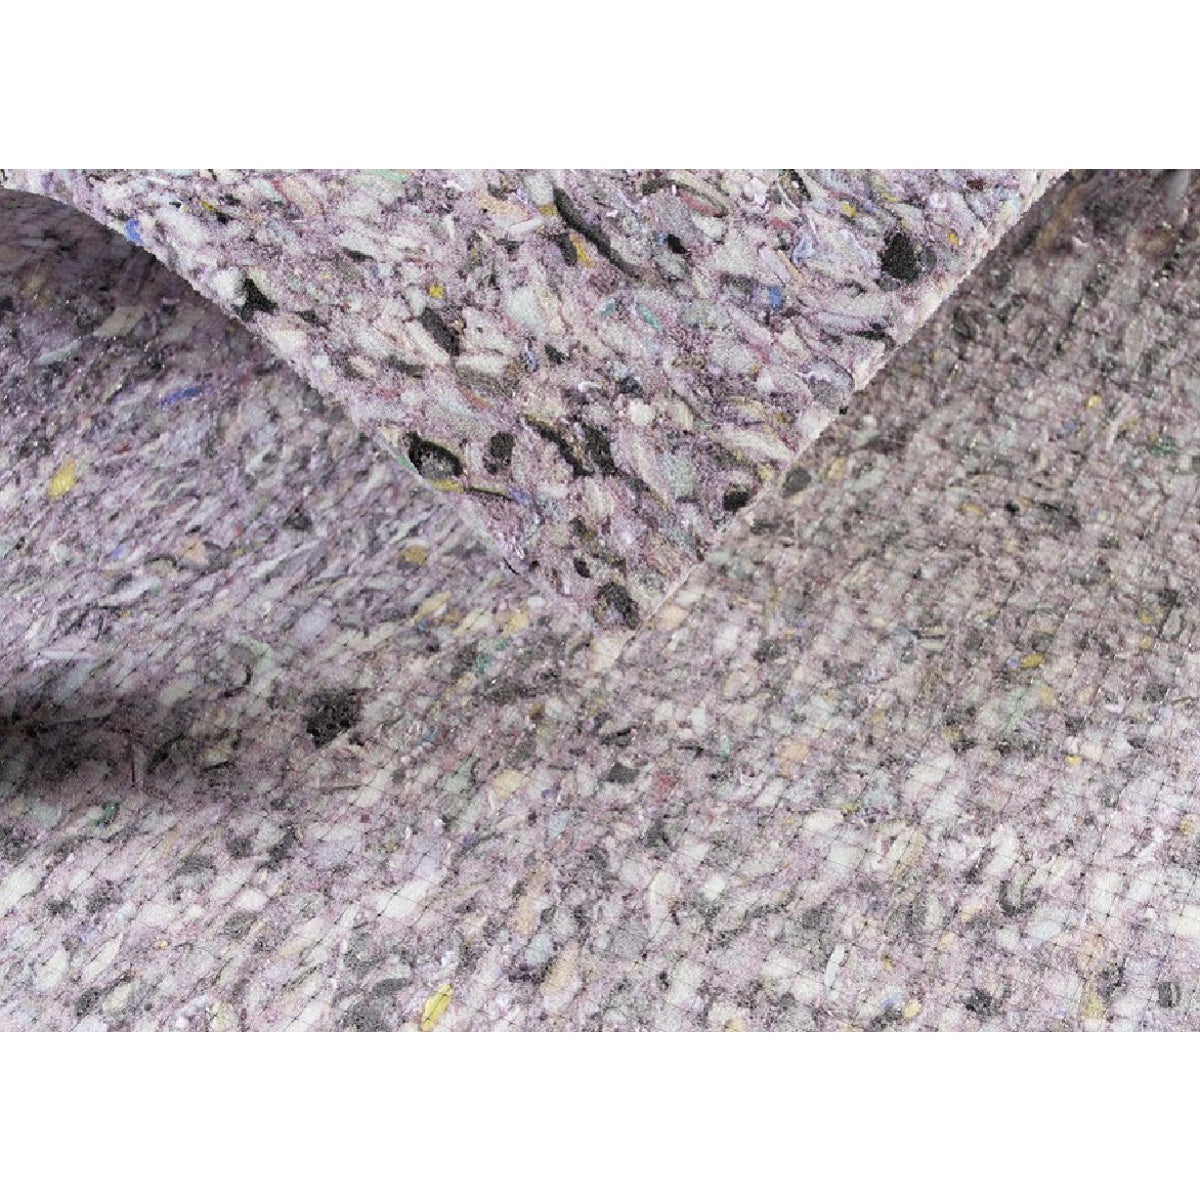 "5.5LB 7/16"" CARPET PAD - G6004 ALTIMA 7/16 by Shaw Carpet Pad - RSCs"